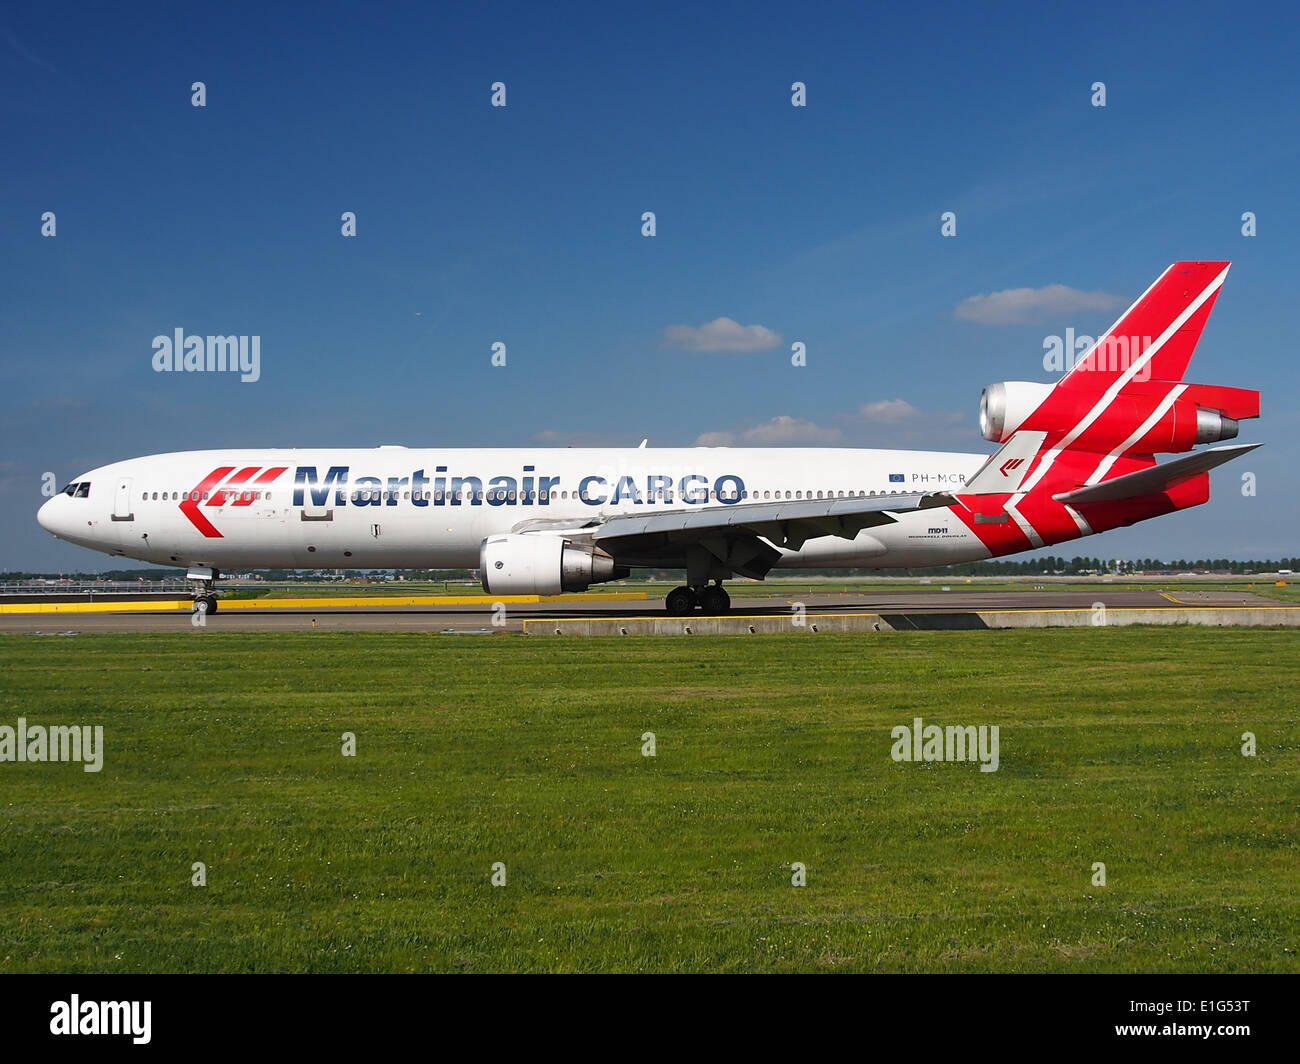 PH-MCR Martinair Holland McDonnell Douglas MD-11CF - cn 48617 at Schiphol (AMS - EHAM), The Netherlands, 16may2014, pic-2 - Stock Image